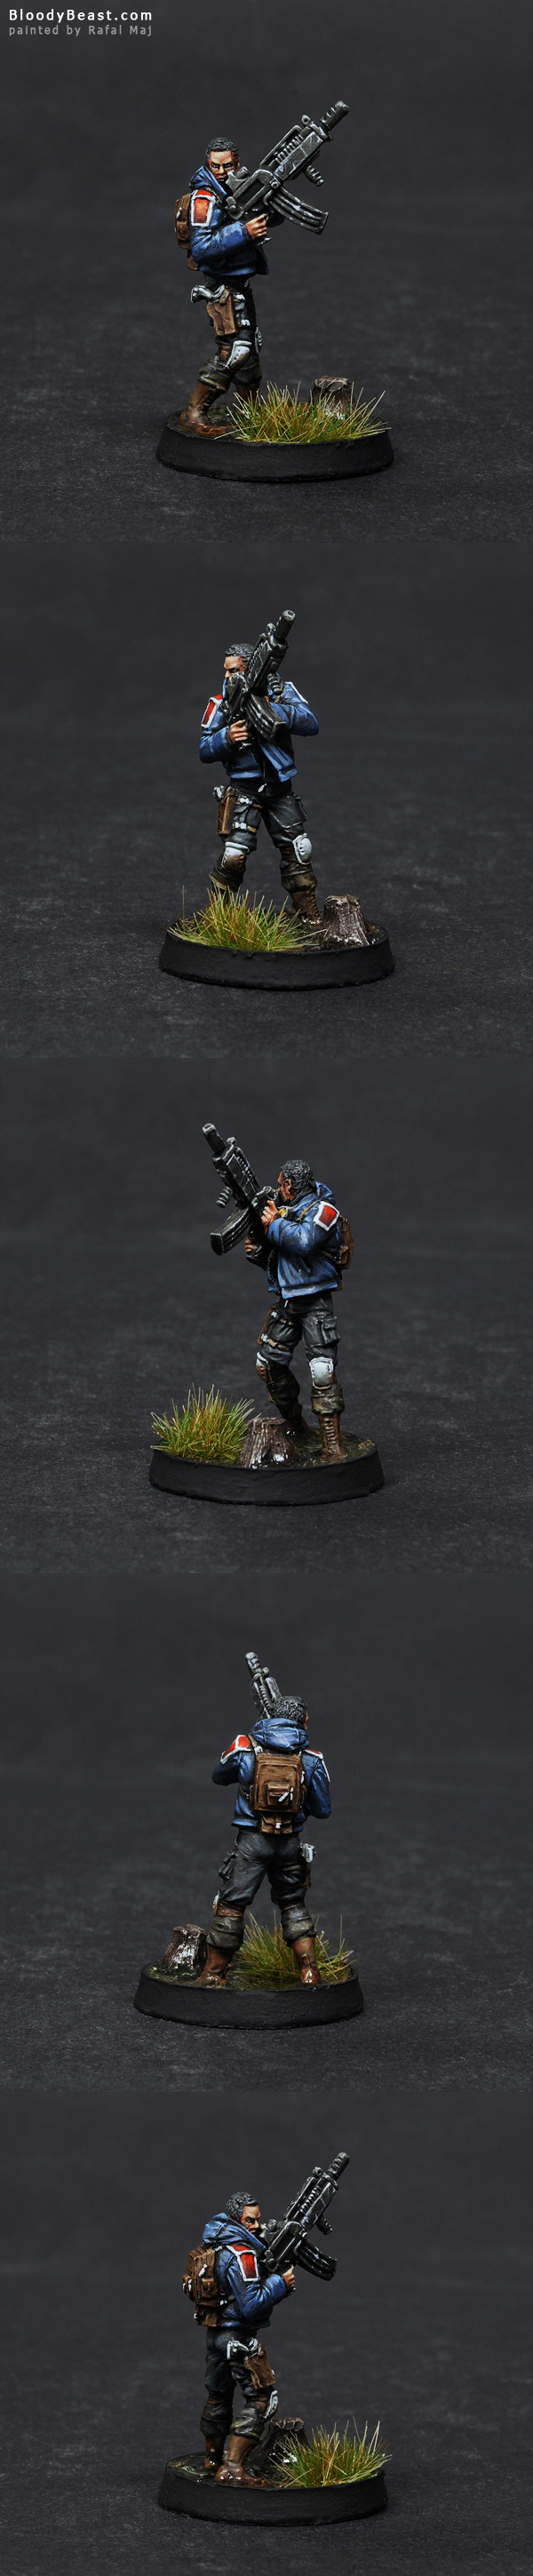 Ariadna Metros with Rifle painted by Rafal Maj (BloodyBeast.com)